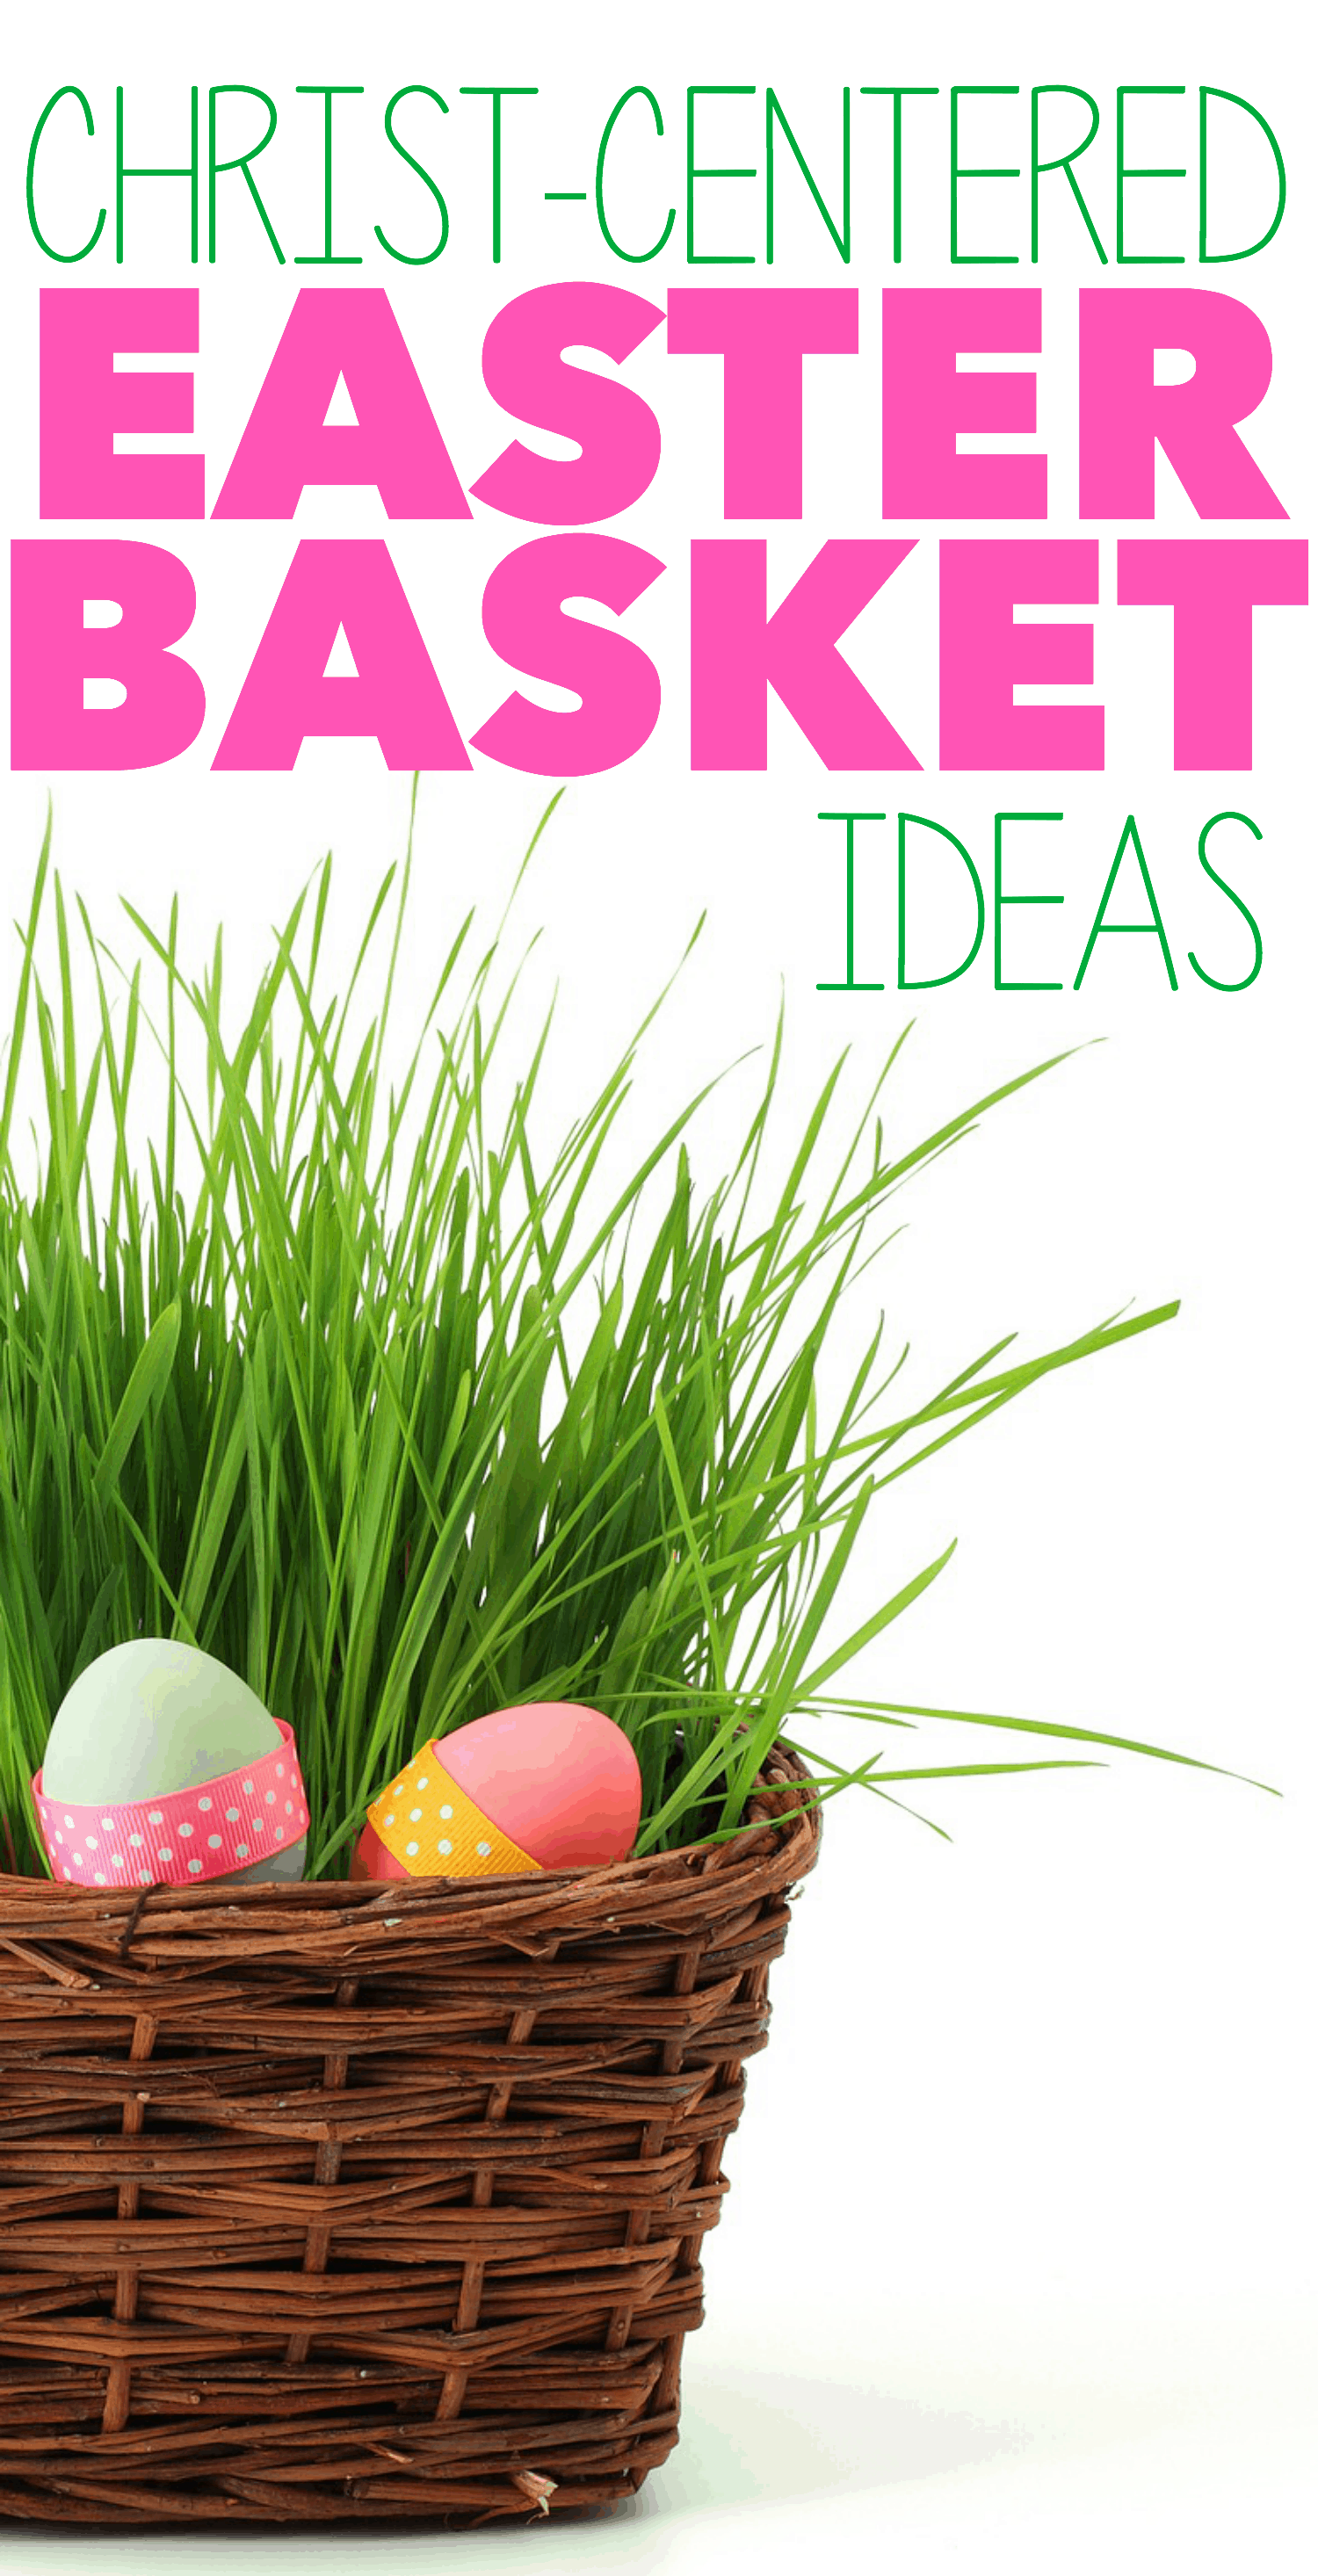 Christ centered easter basket ideas i can teach my child as christians easter is a time when we celebrate the resurrection of jesus christ and i always want this to be our focus which we do throughout the week negle Image collections